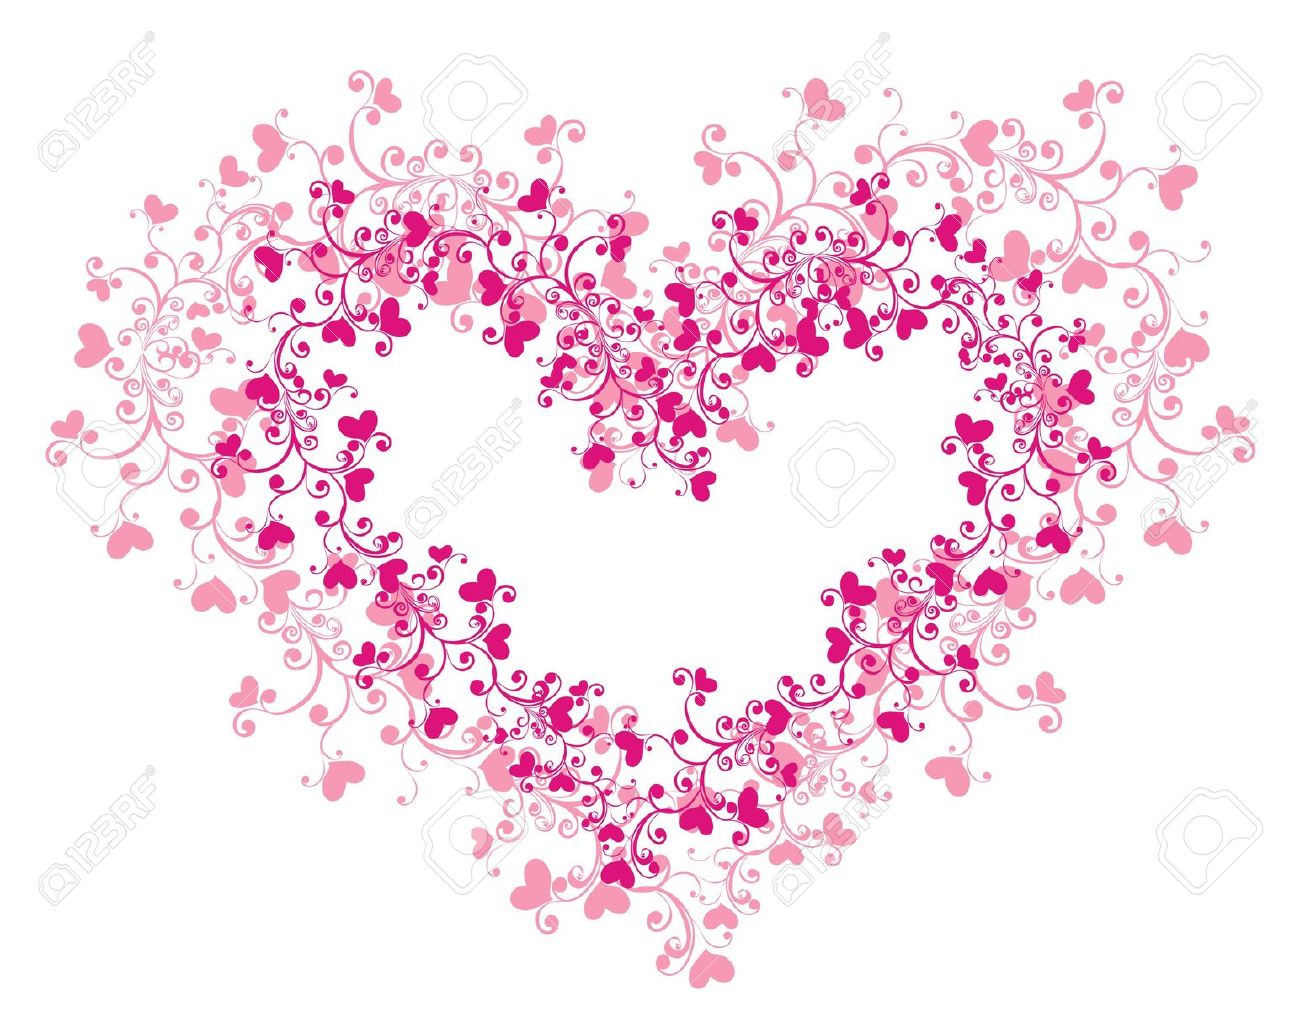 Lacy Heart With Floral Ornament Royalty Free Cliparts, Vectors.